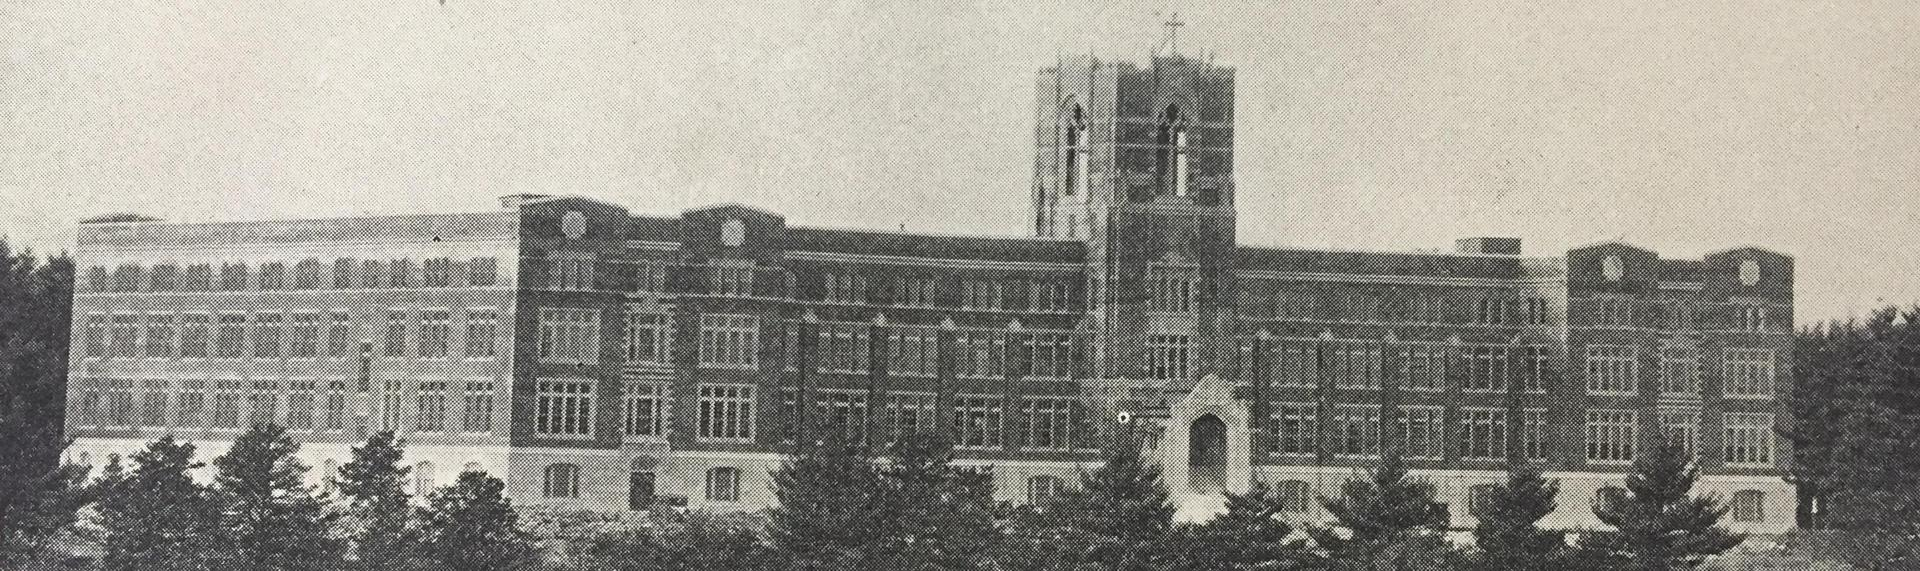 Black and white photo of the school building